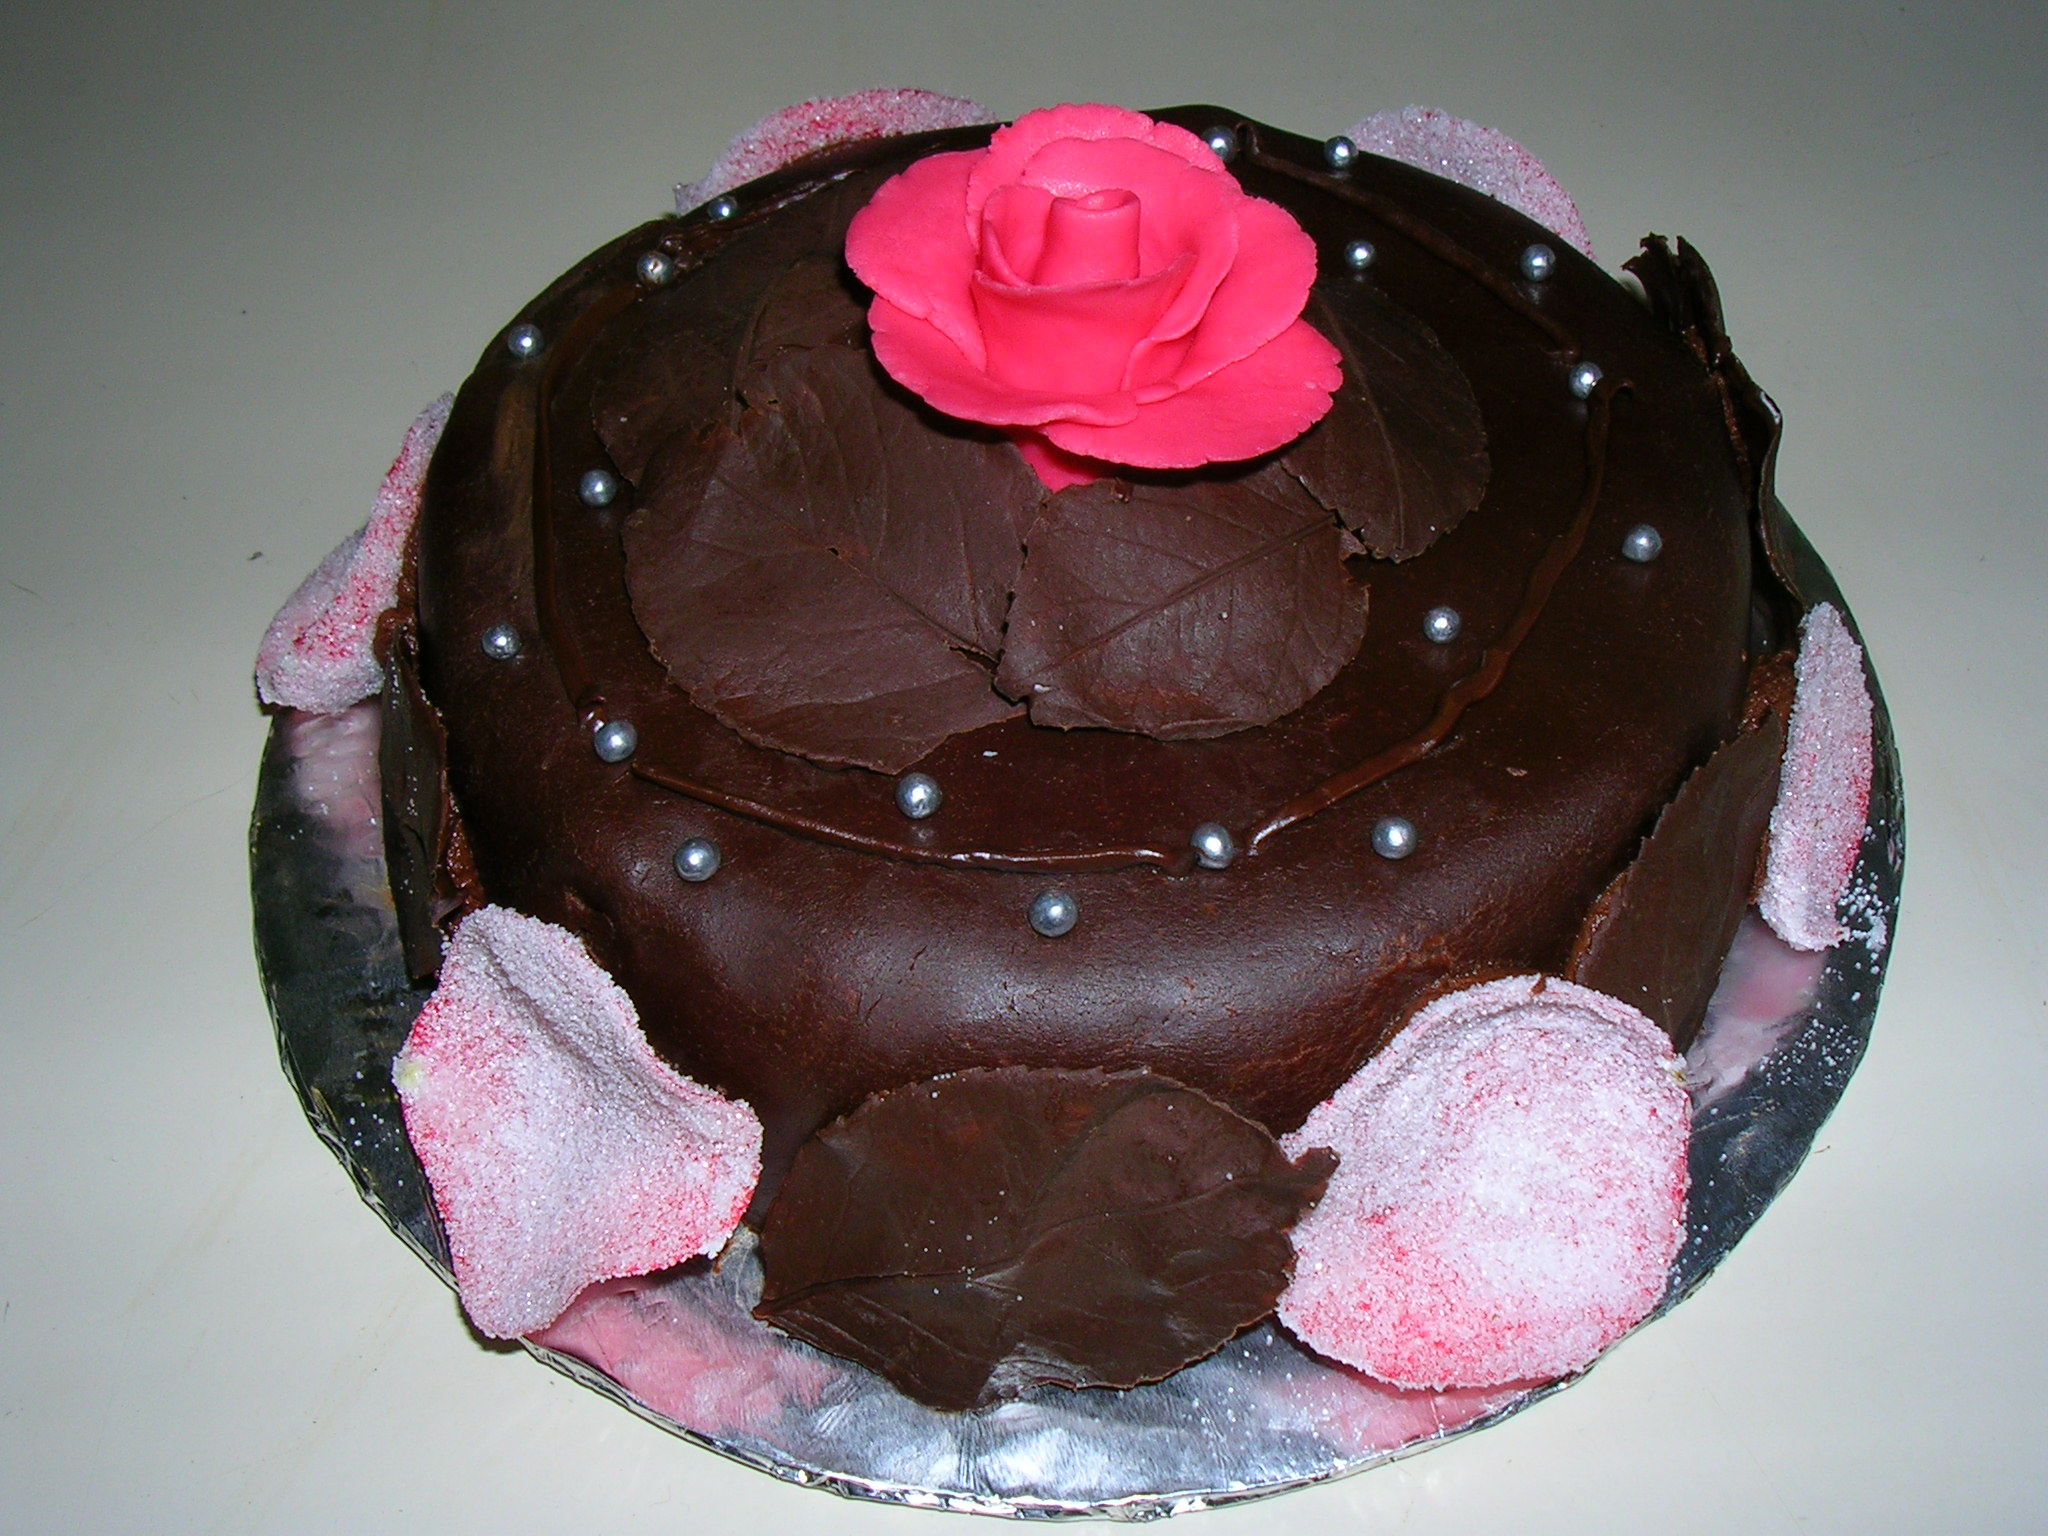 Cake Images Rose : File:Cake with rose 2.jpg - Wikimedia Commons